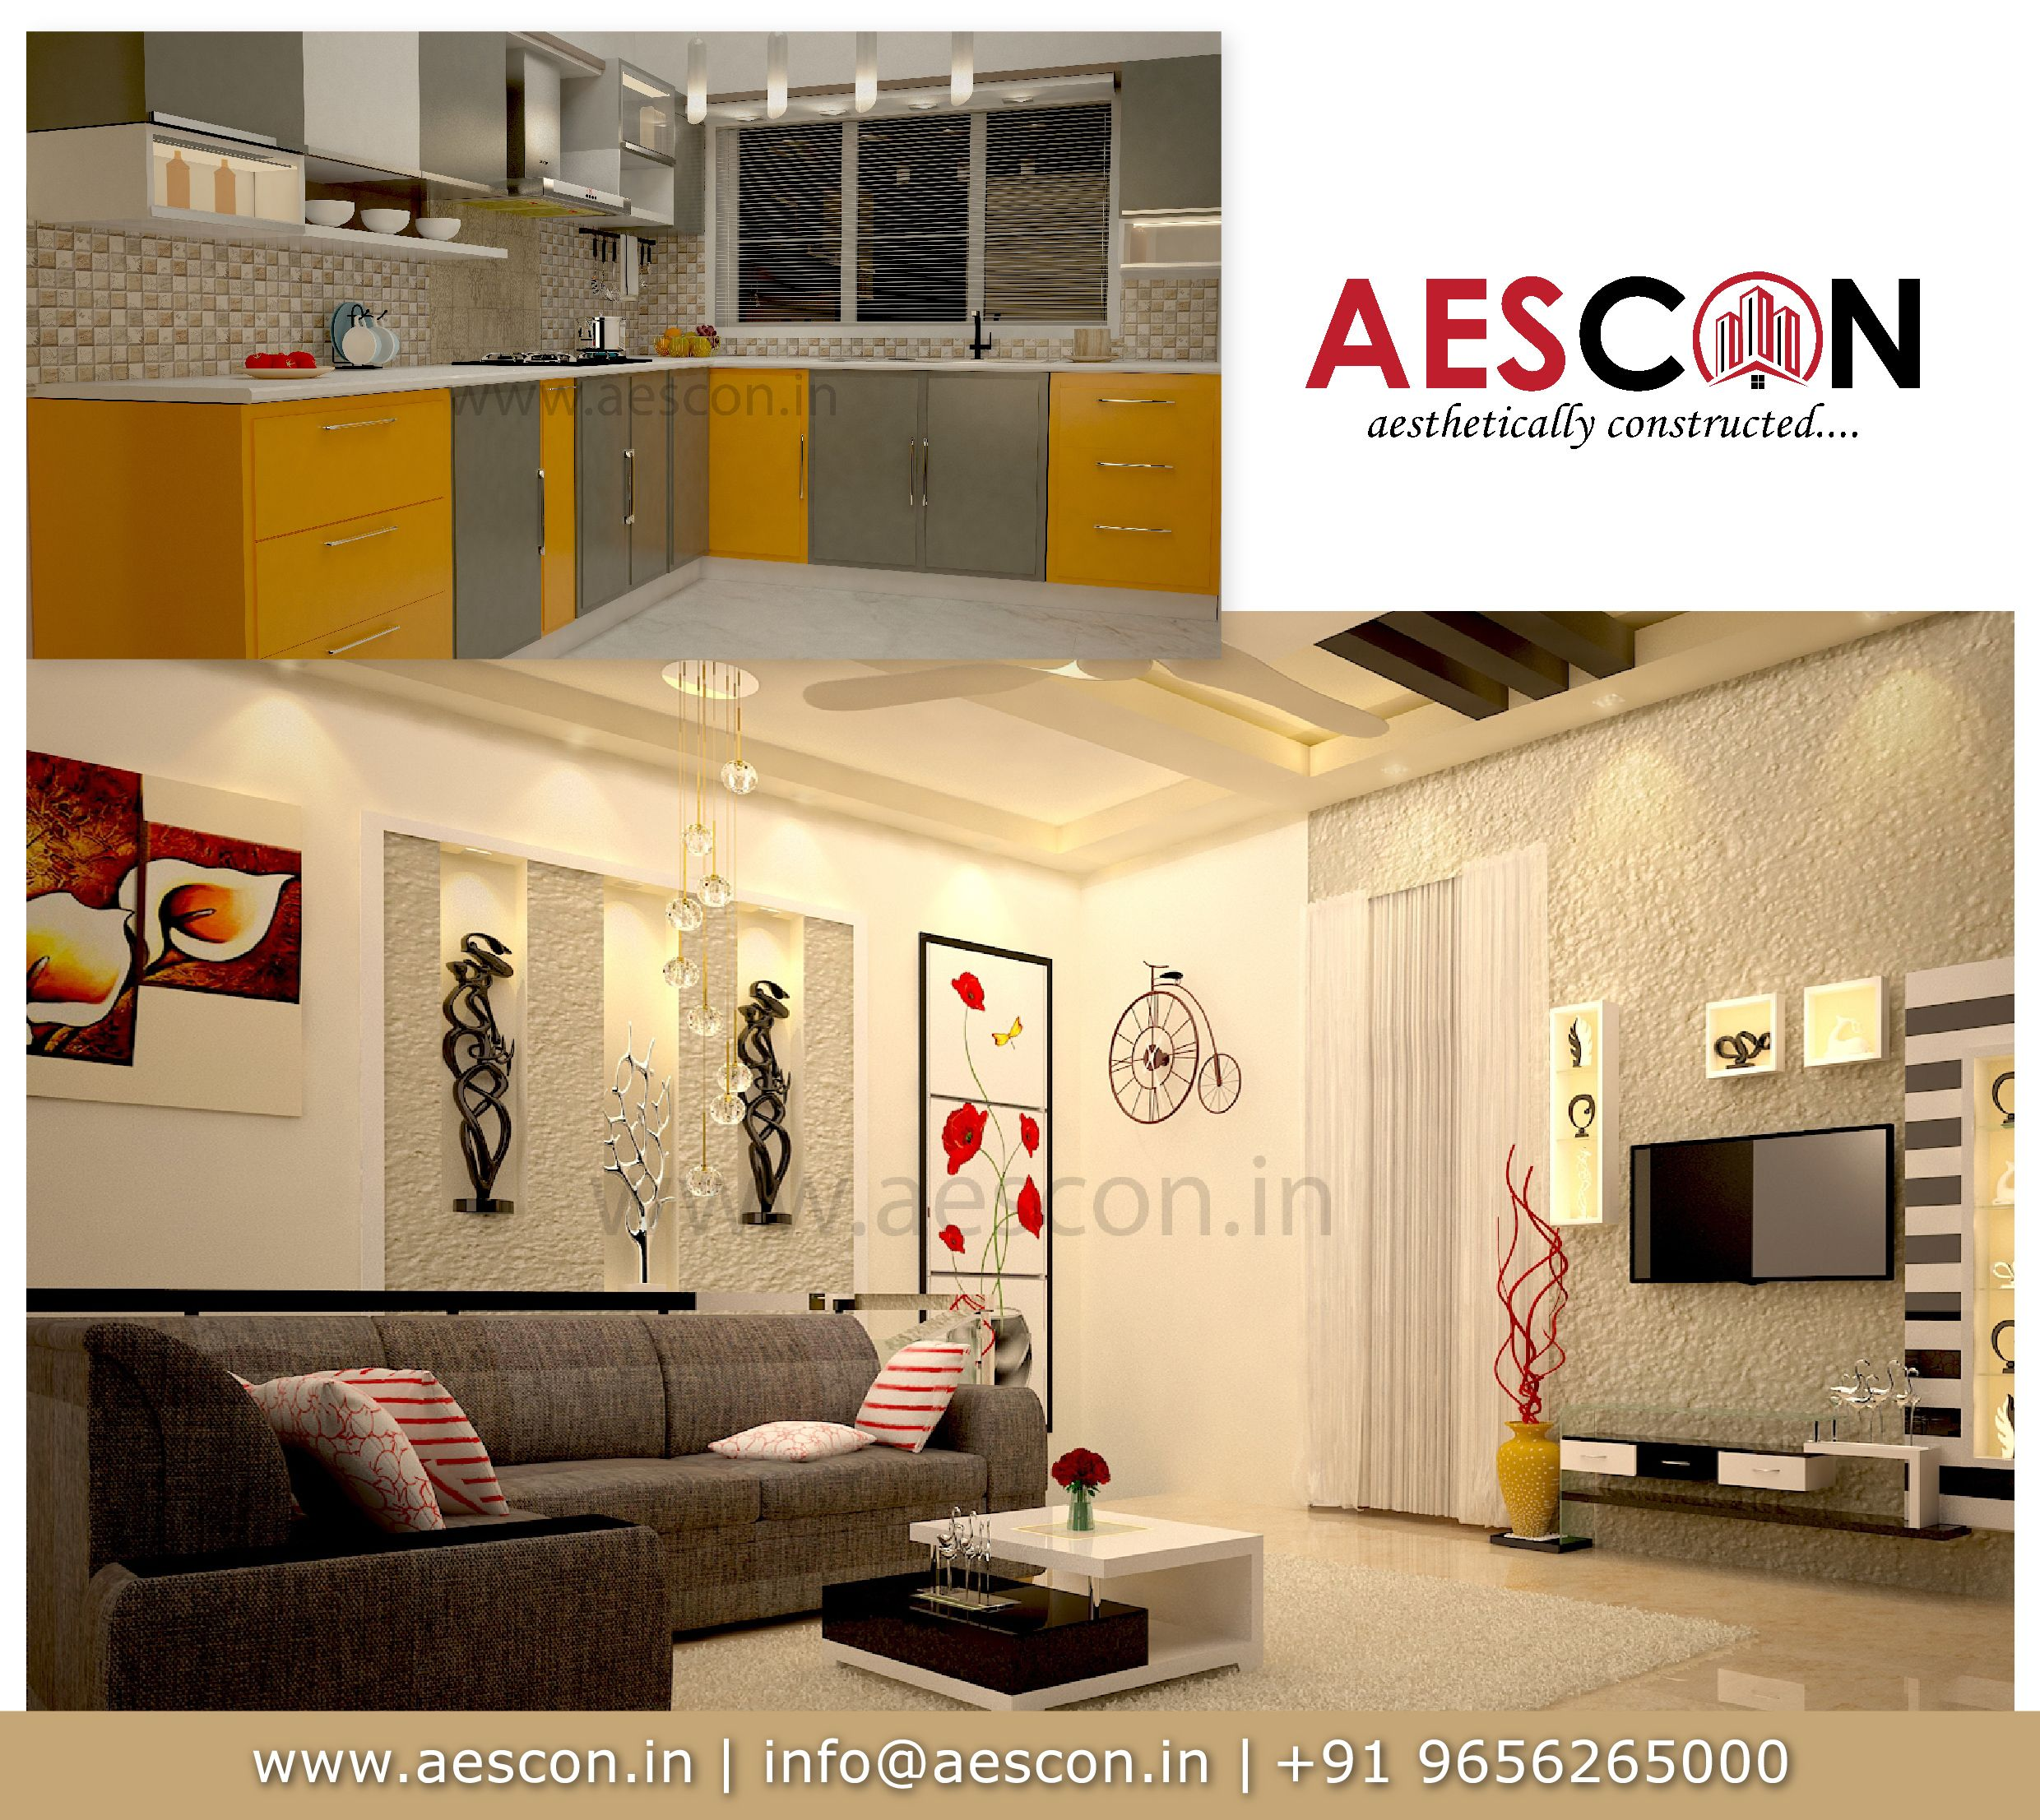 Our Identity Is A Blend Of Modernity Tradition And Craft Aescon